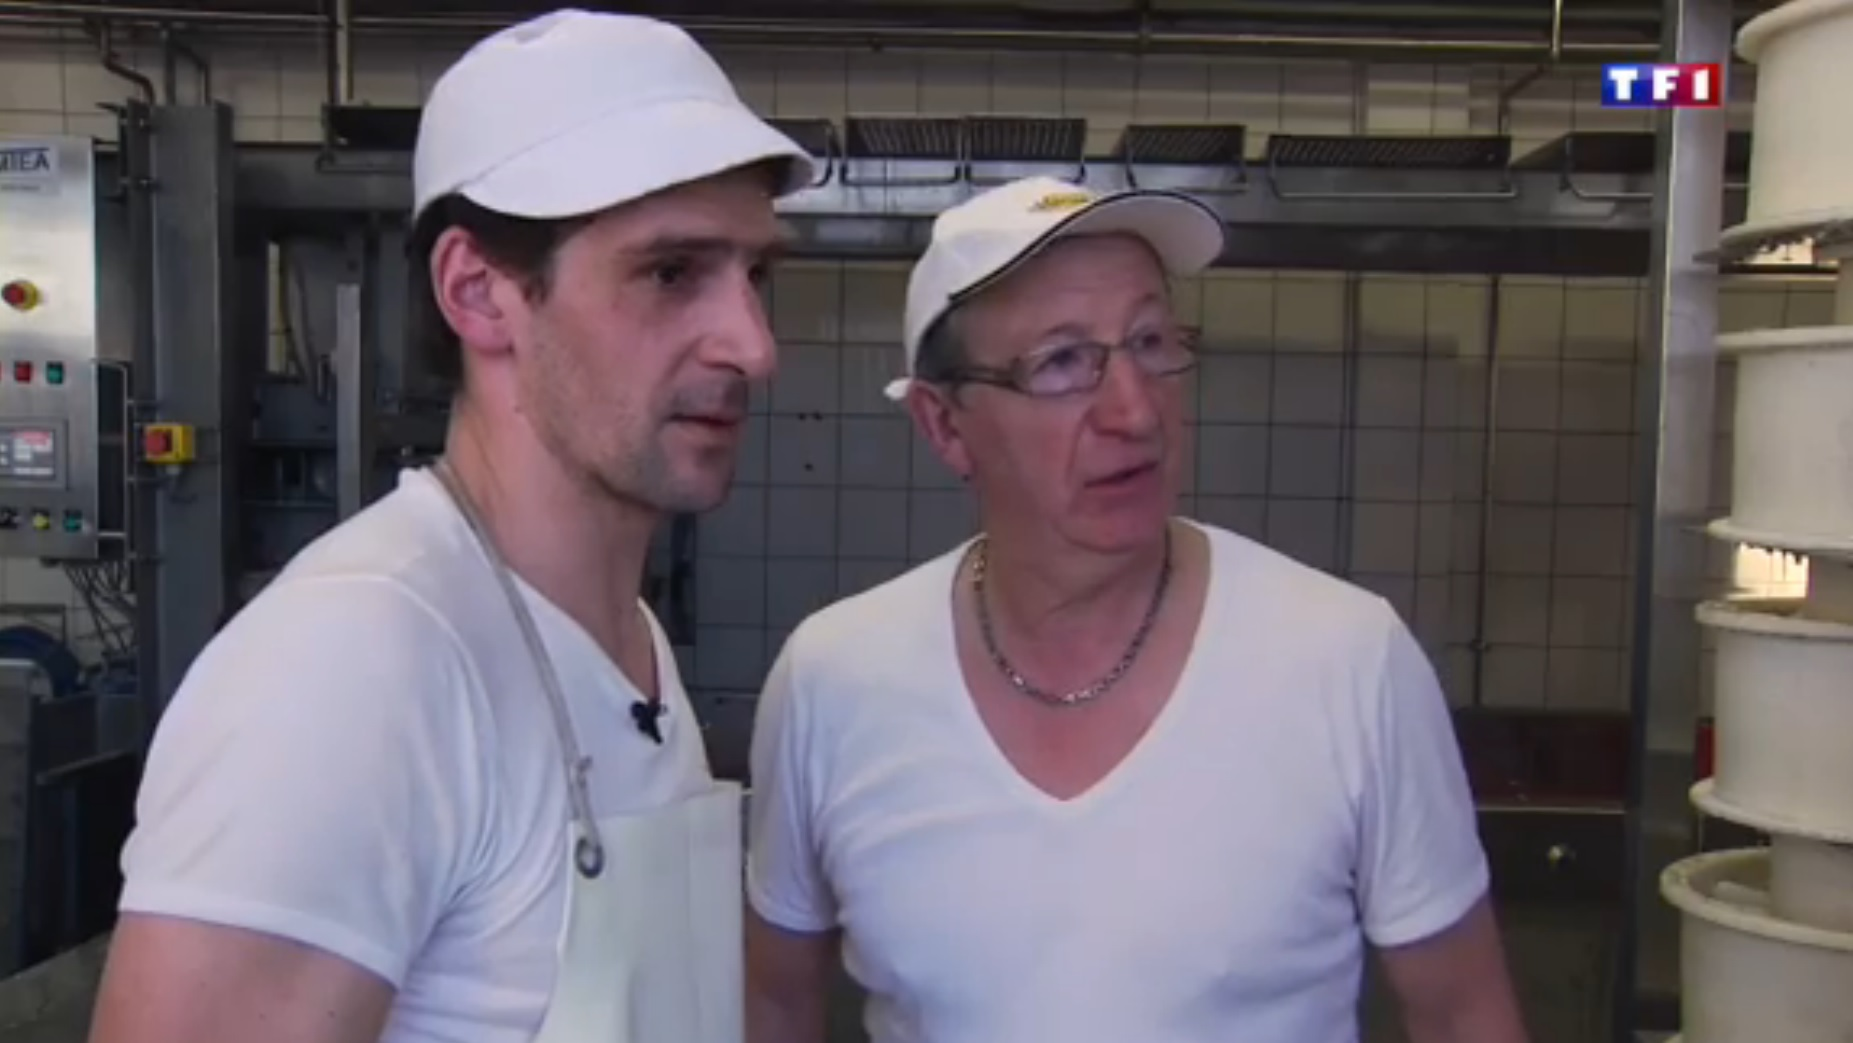 TF1 Jura (2-5) - une famille de fromagers  19